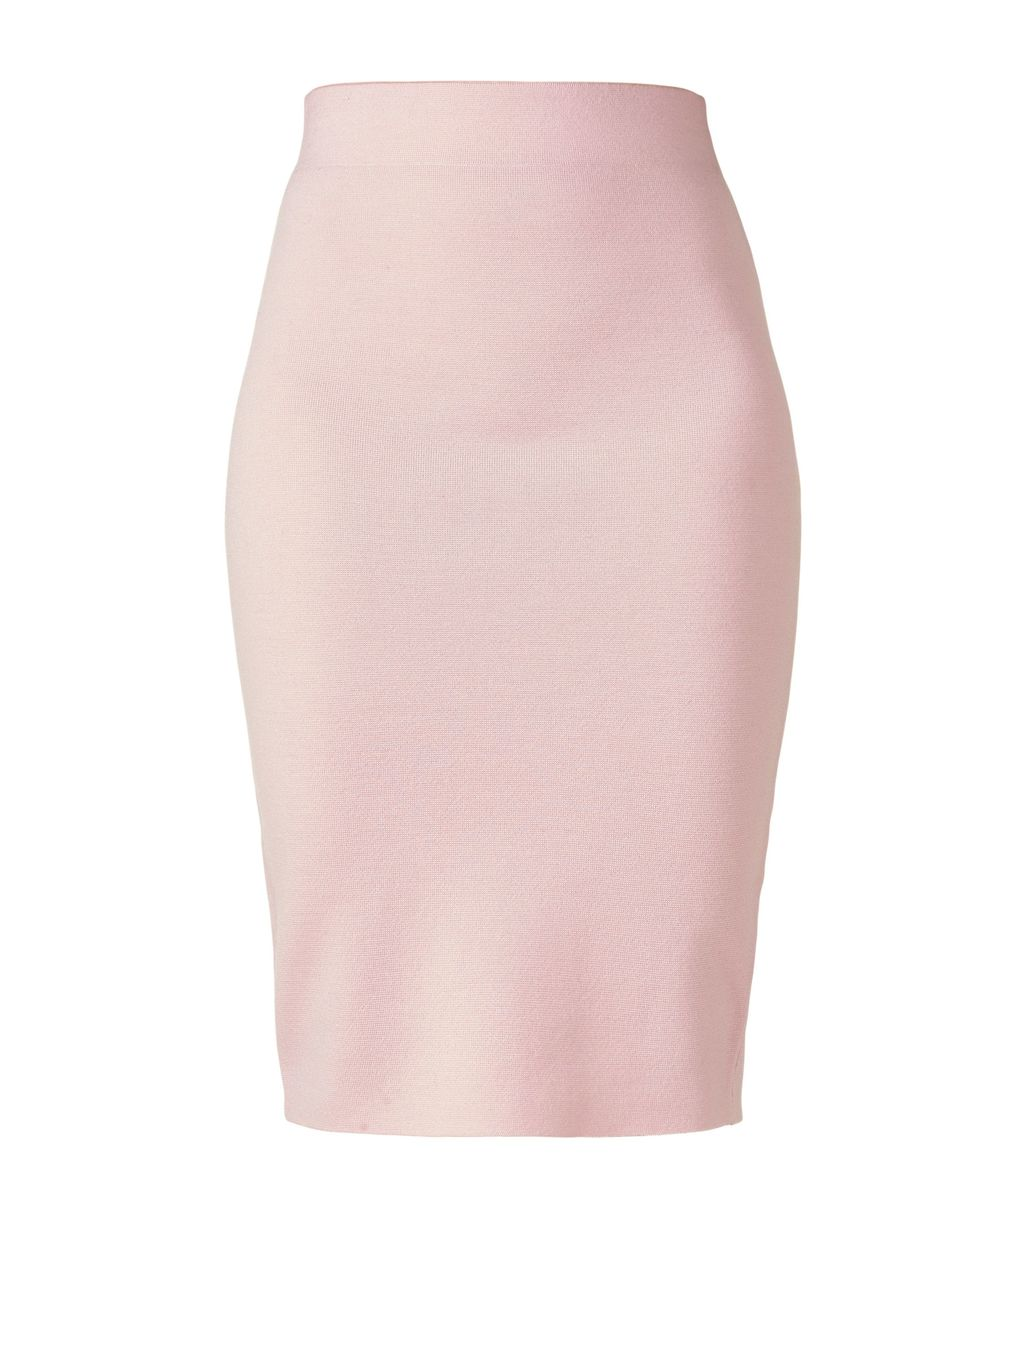 Milano Wool Skirt, Pink - pattern: plain; style: pencil; fit: tailored/fitted; waist: high rise; predominant colour: blush; occasions: work, occasion; length: just above the knee; fibres: wool - 100%; pattern type: fabric; texture group: woven light midweight; season: s/s 2016; wardrobe: basic